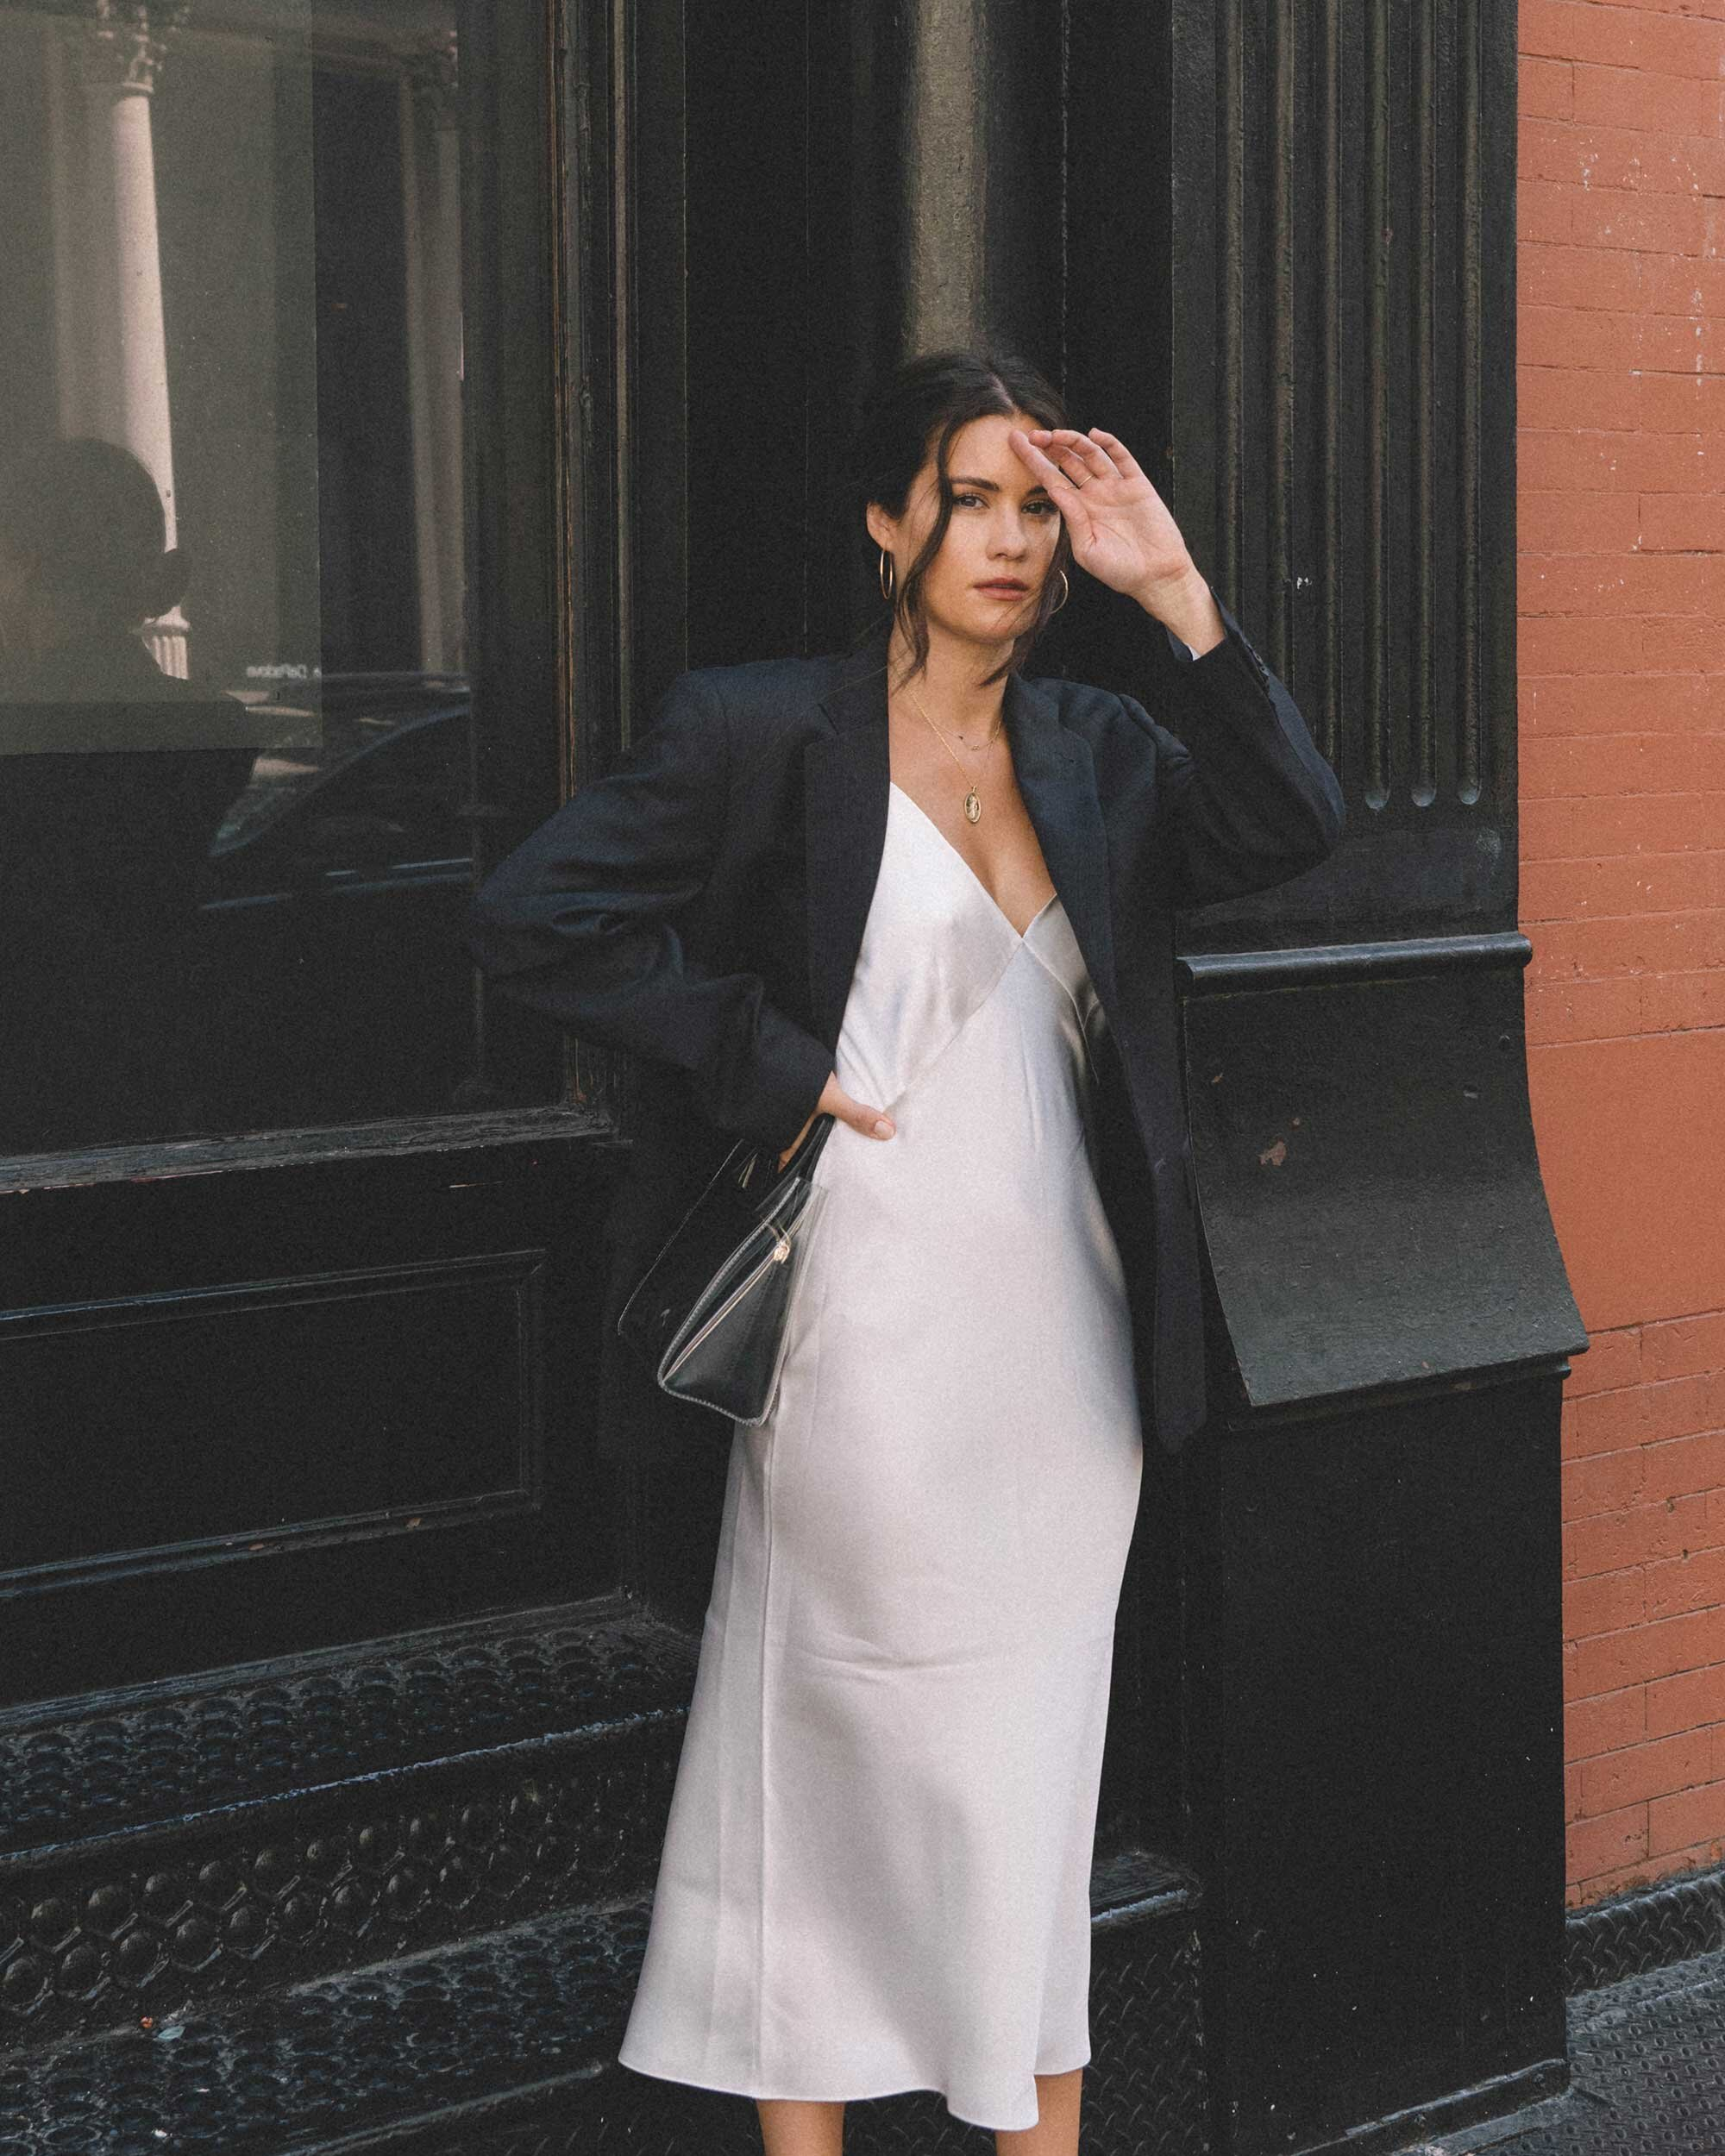 Sarah Butler of Sarah Styles Seattle wears Olivia von Halle Issa Ivory Slip dress and black blazer | @sarahchristine -4.jpg